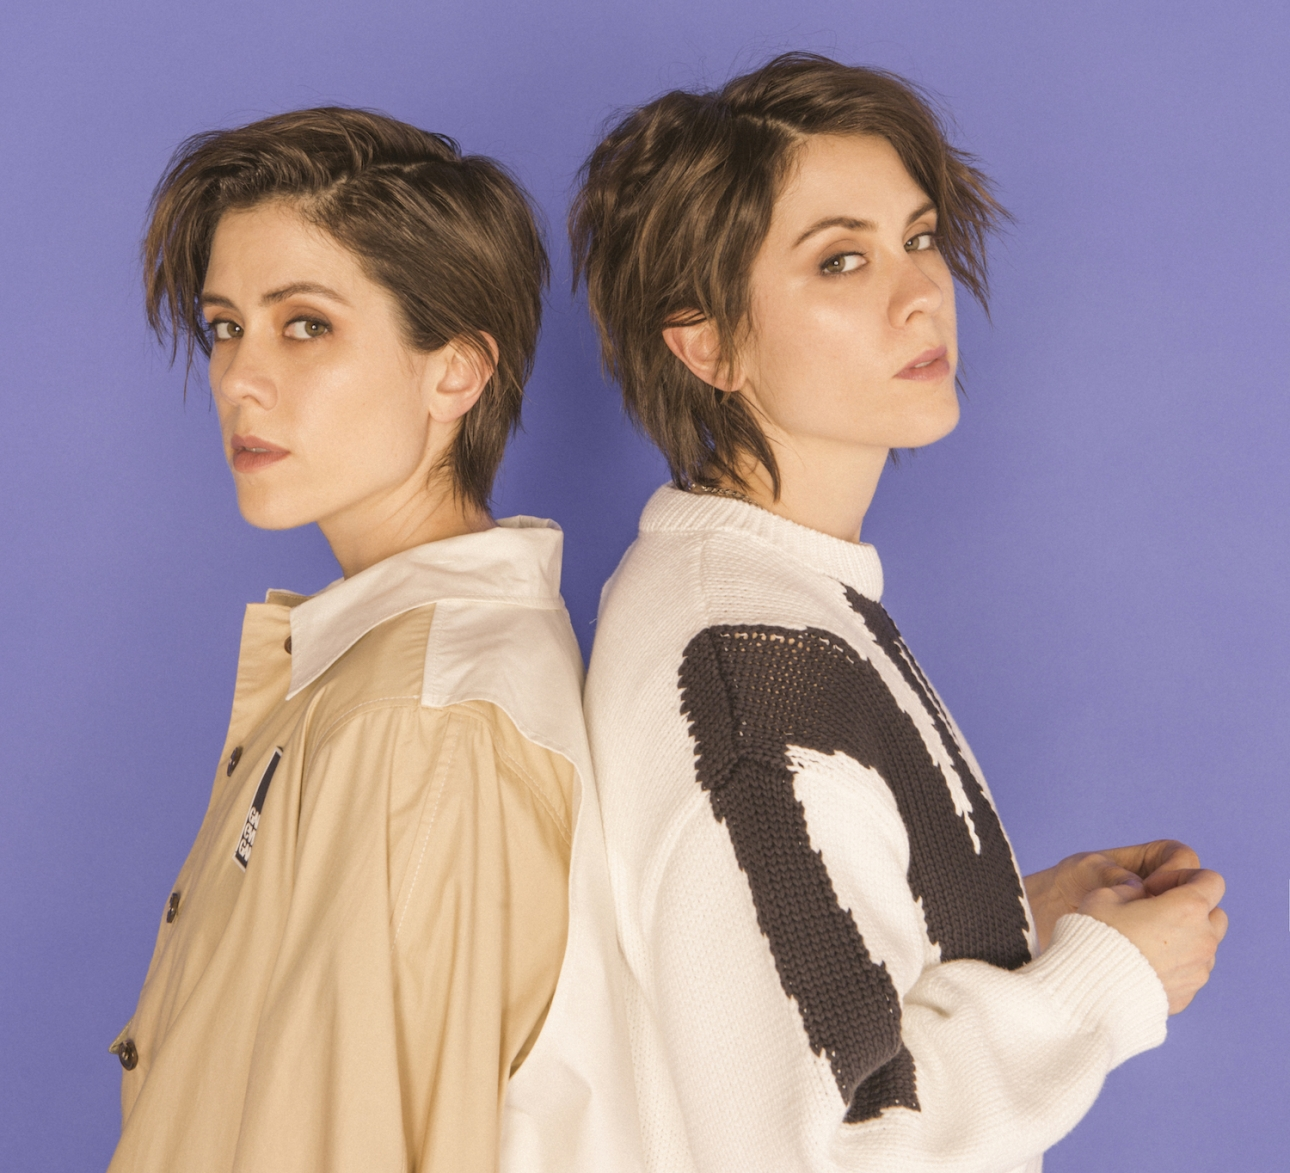 """Tegan and Sara share confessional track """"Don't Believe The Things They Tell You (They Lie)"""""""